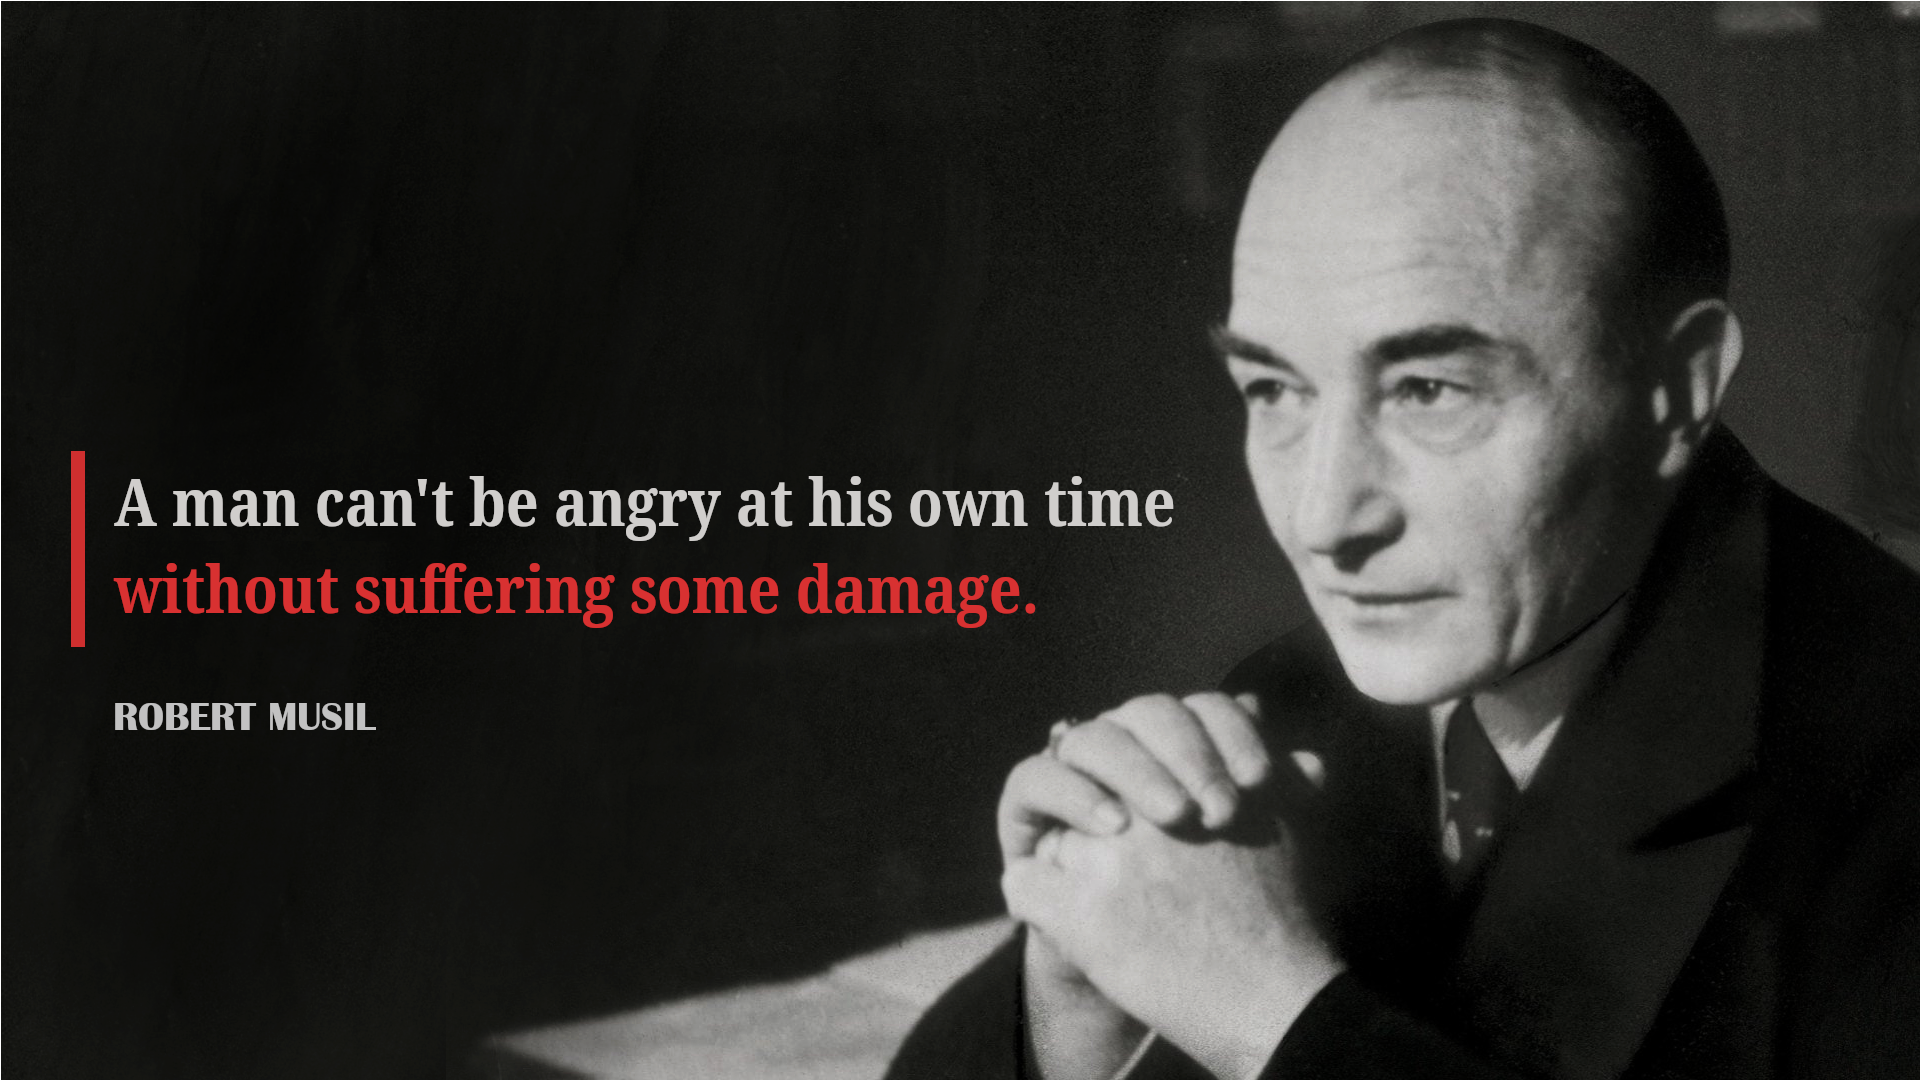 """A man can't be angry at his own time without suffering some damage"" – Robert Musil [1920×1080]"